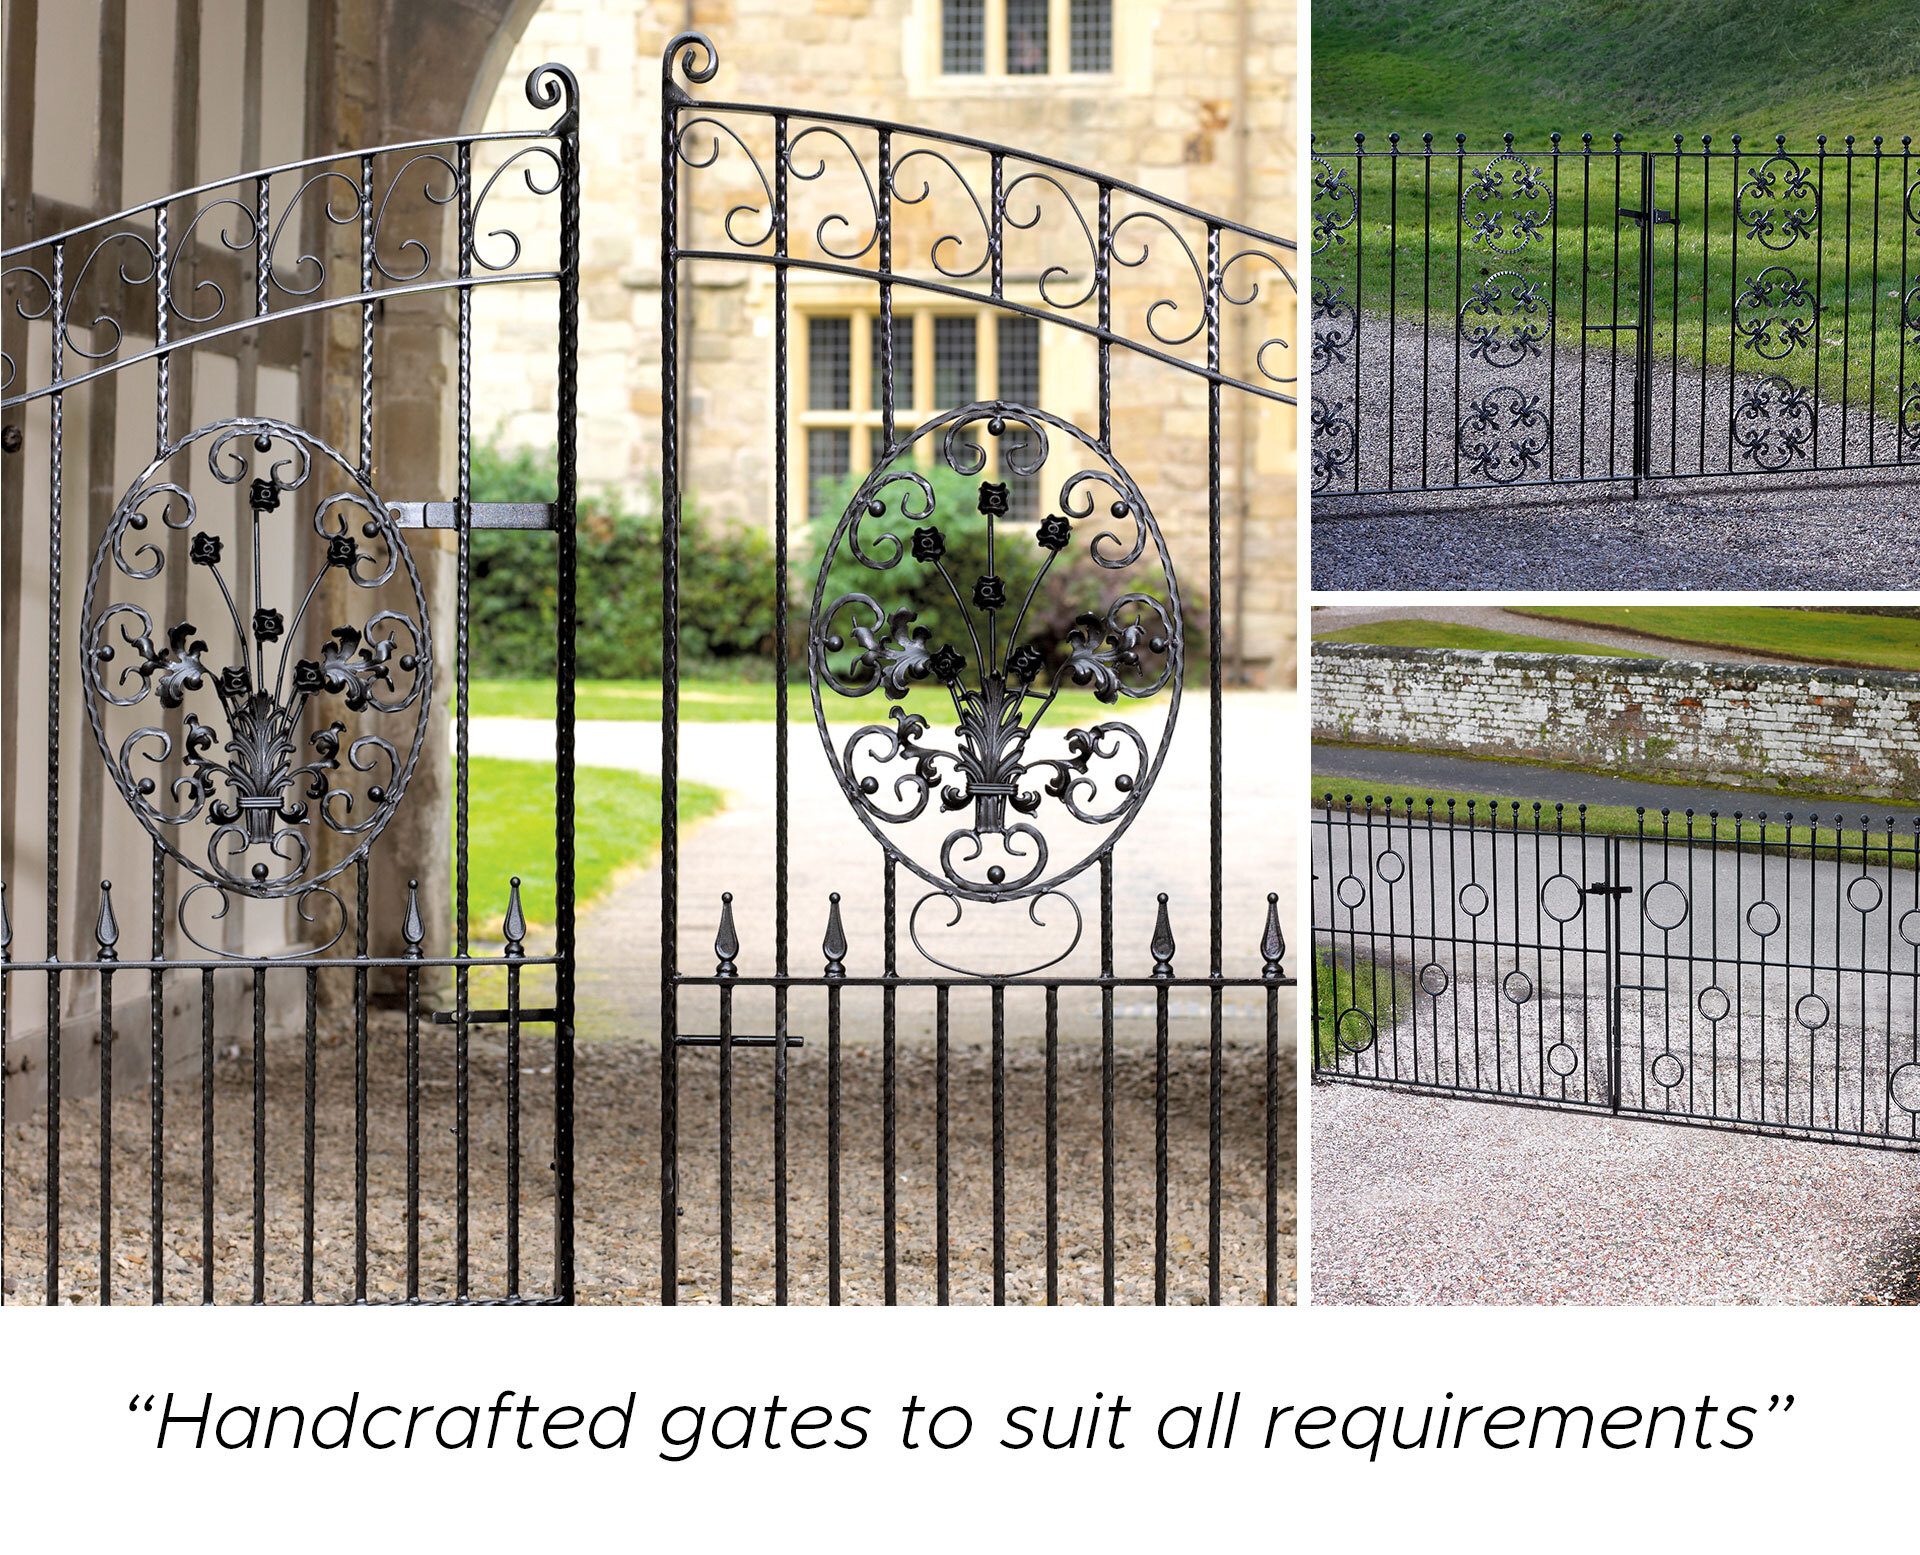 Examples of handmade metal gates for sale within our online store